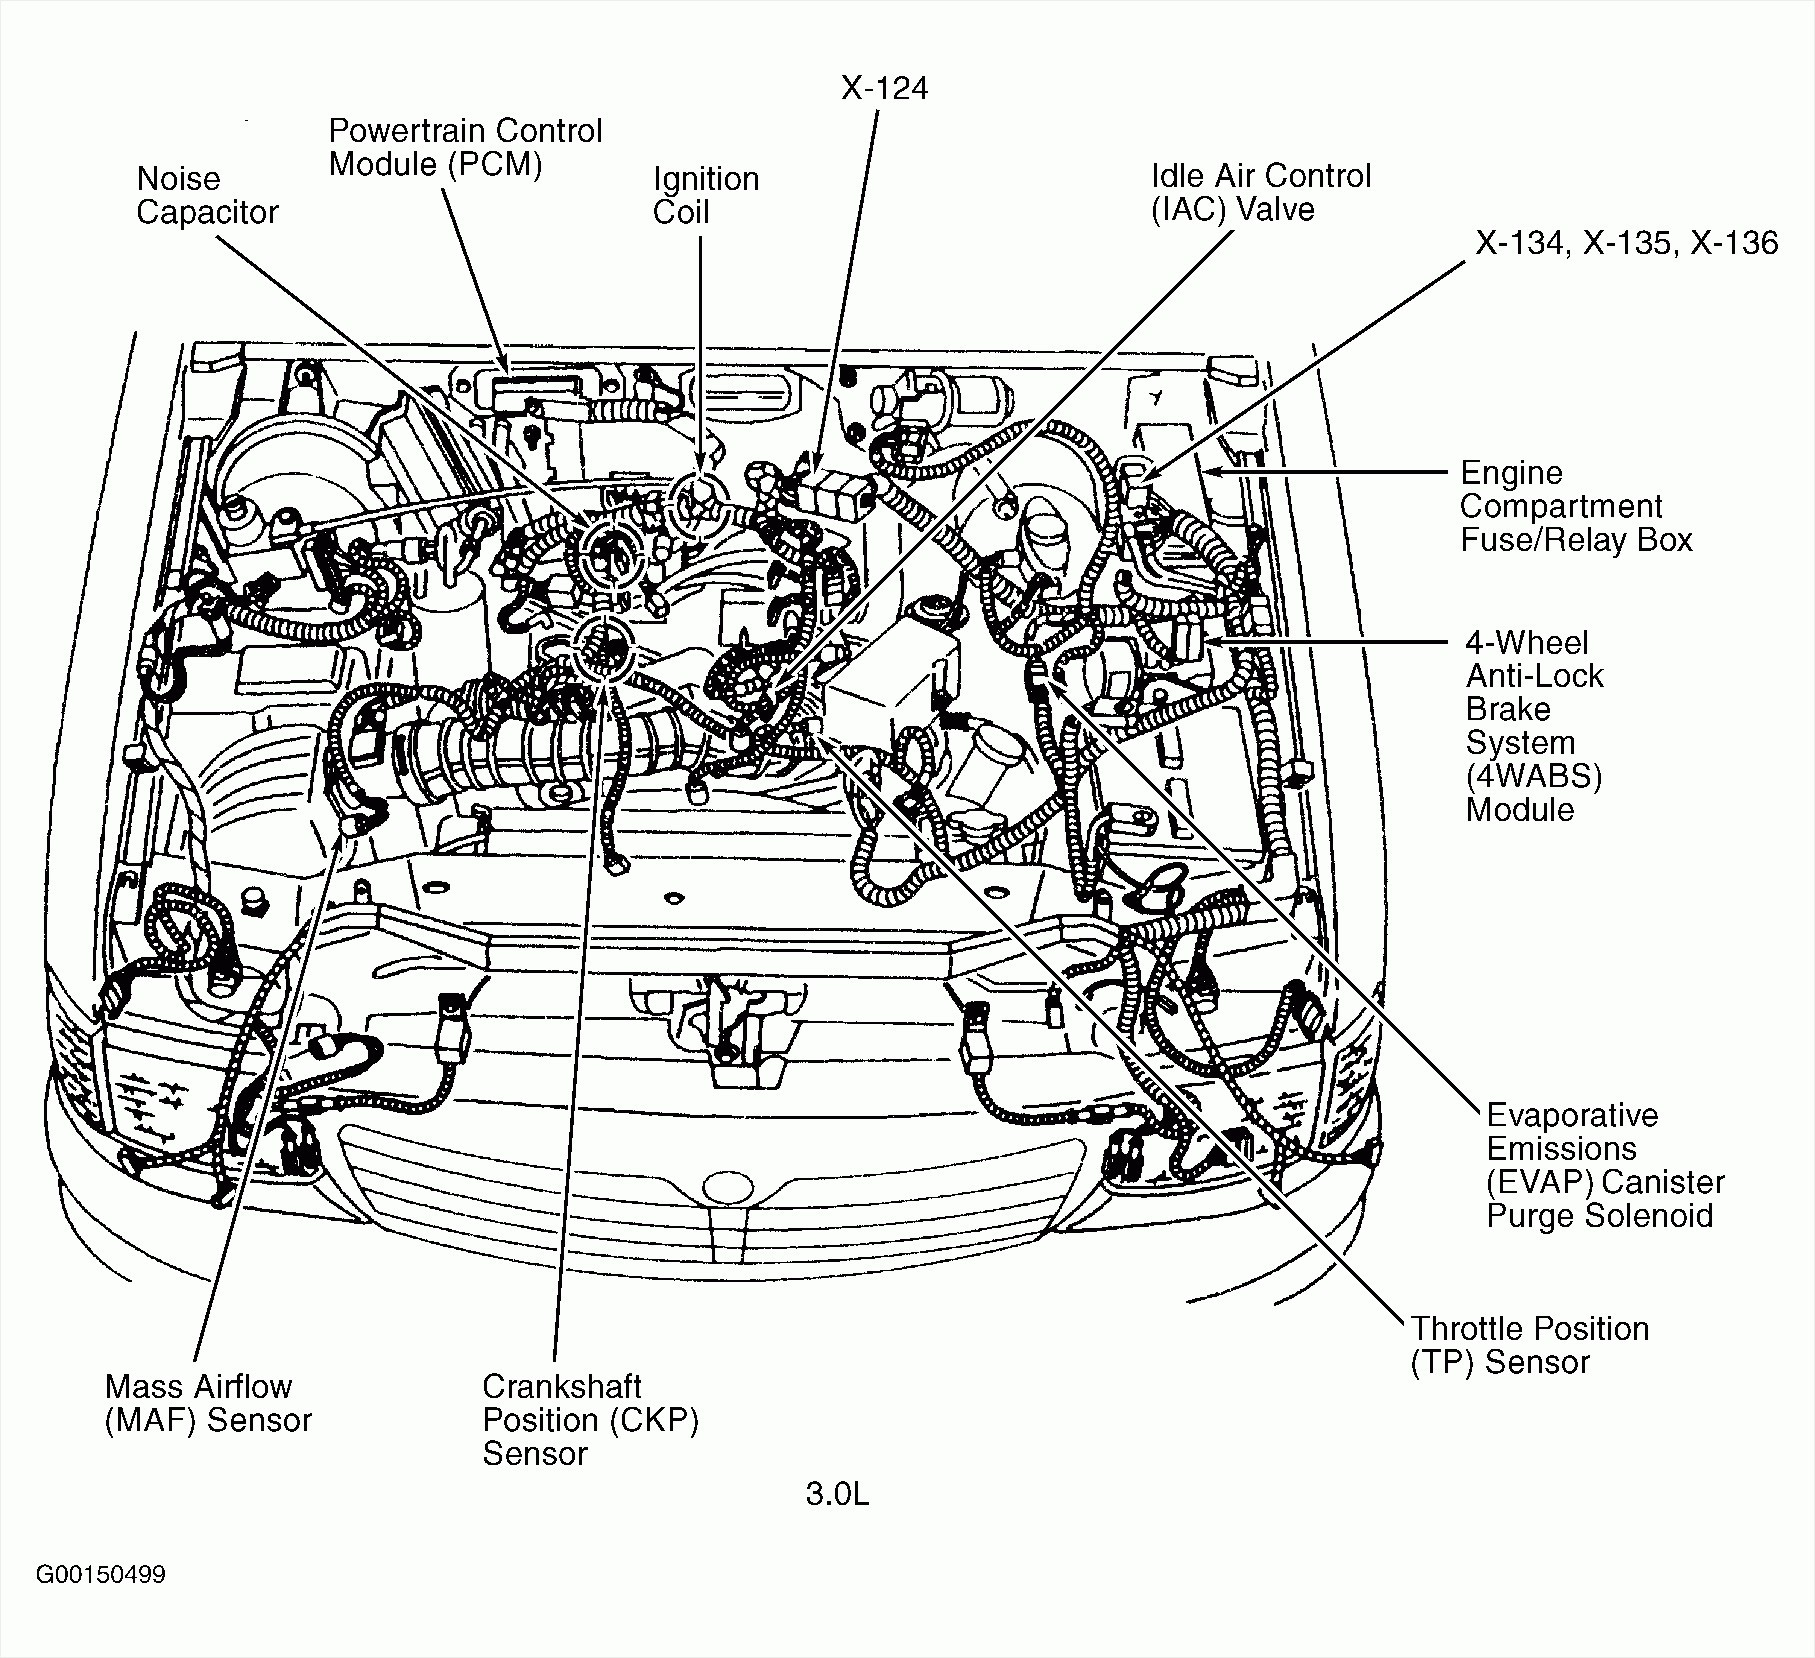 hight resolution of chevy 7 4l engine diagram wiring diagram page 3 4l chevy engine diagram wiring diagrams show